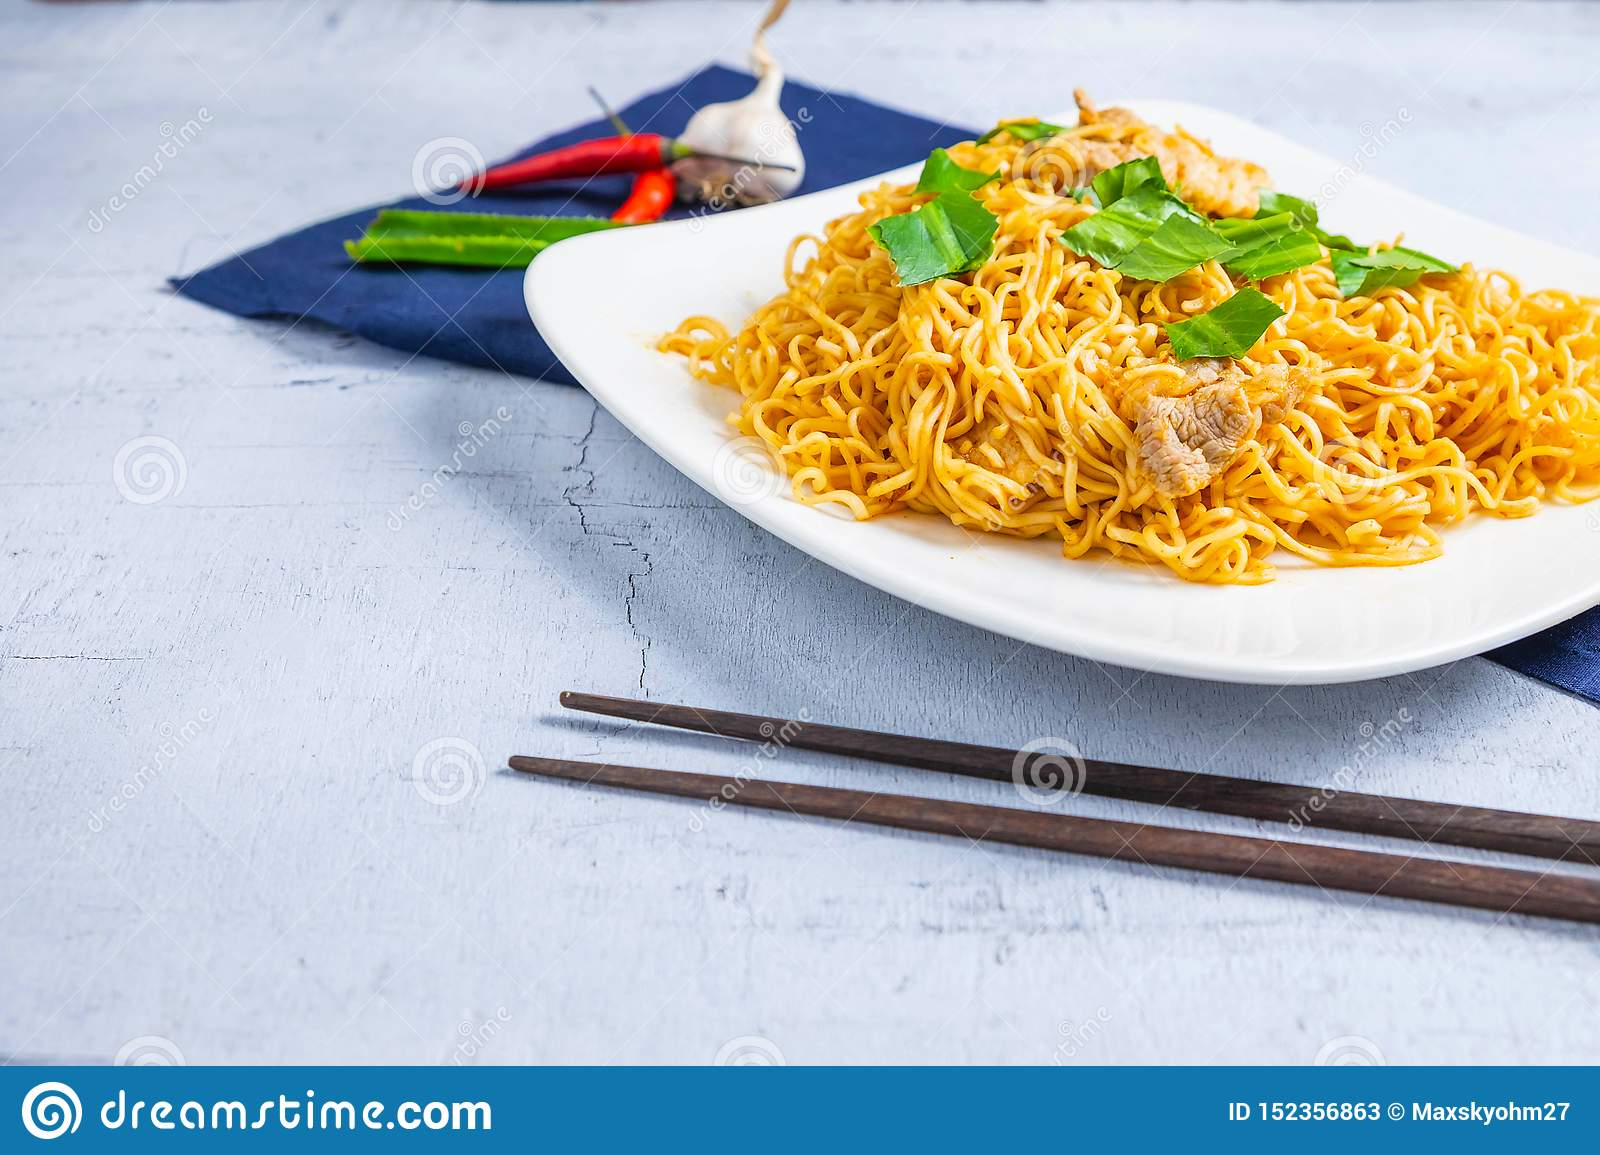 Stir noodles with vegetables in a white plate on a wooden floor